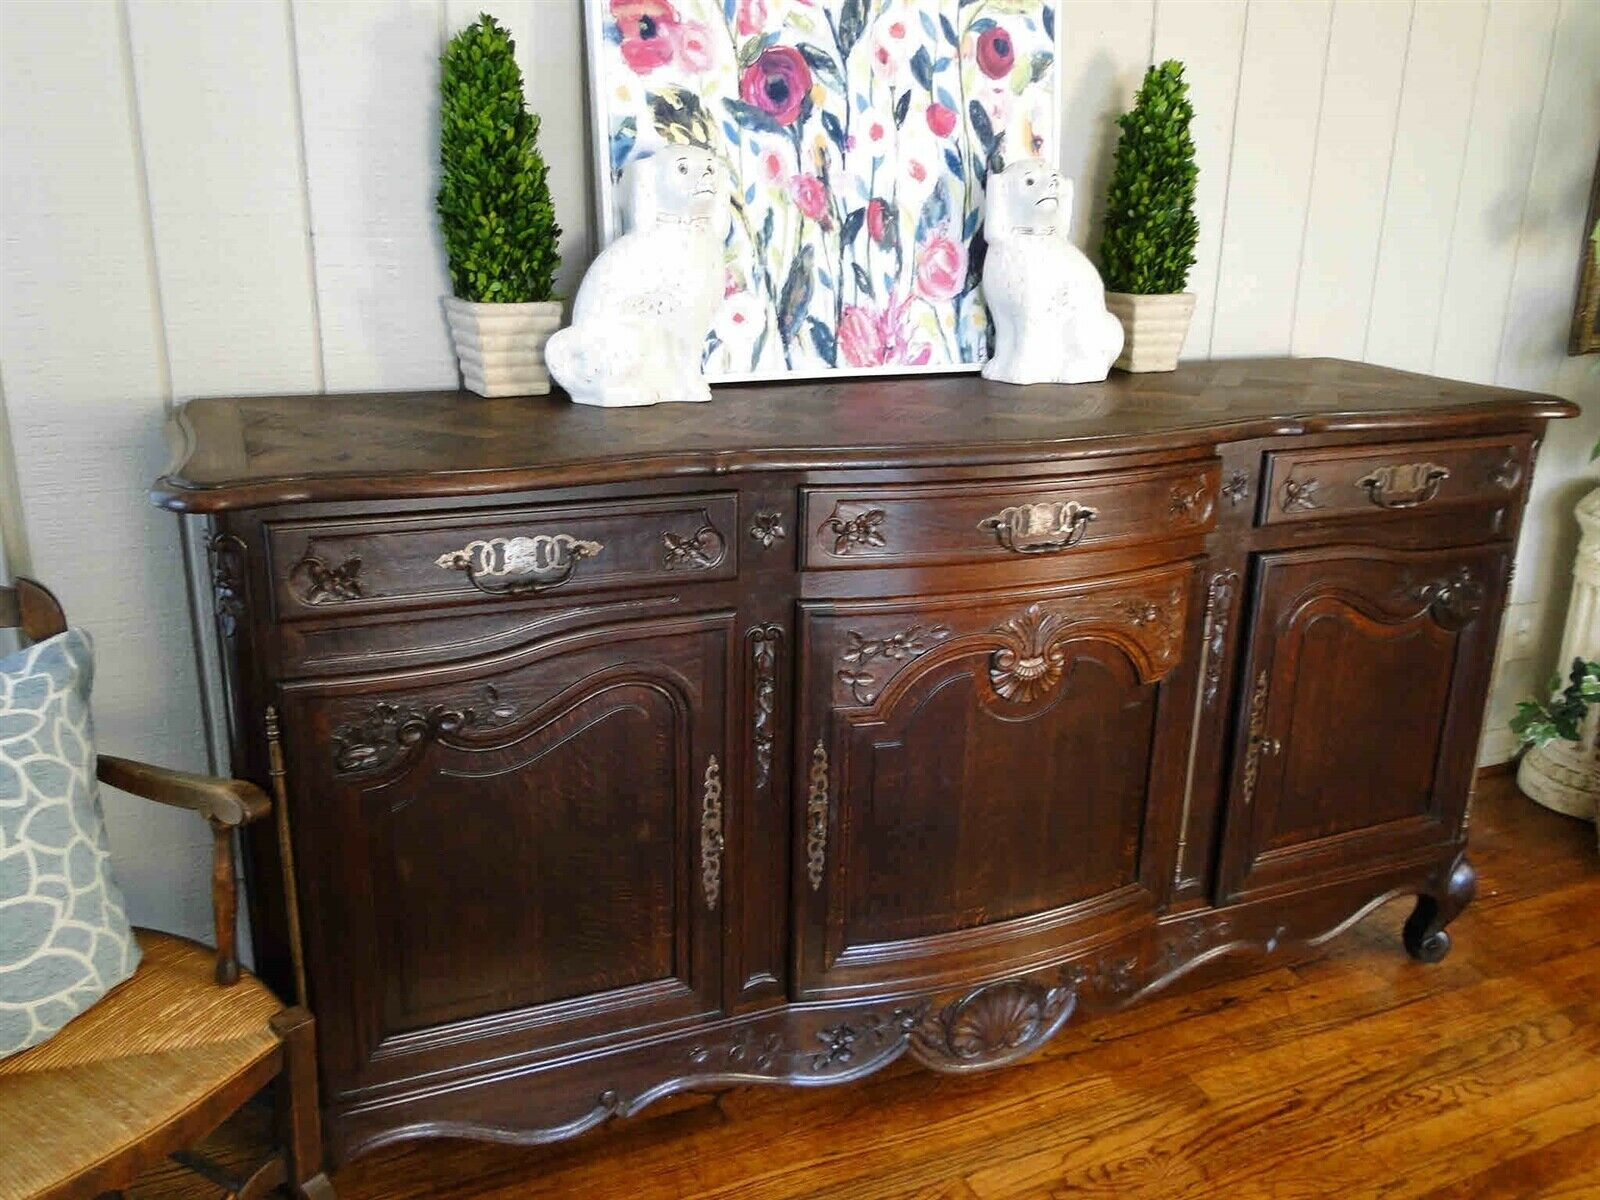 Antique French Country Louis XV Buffet Server Sideboard 3 Door Carved Oak Shell